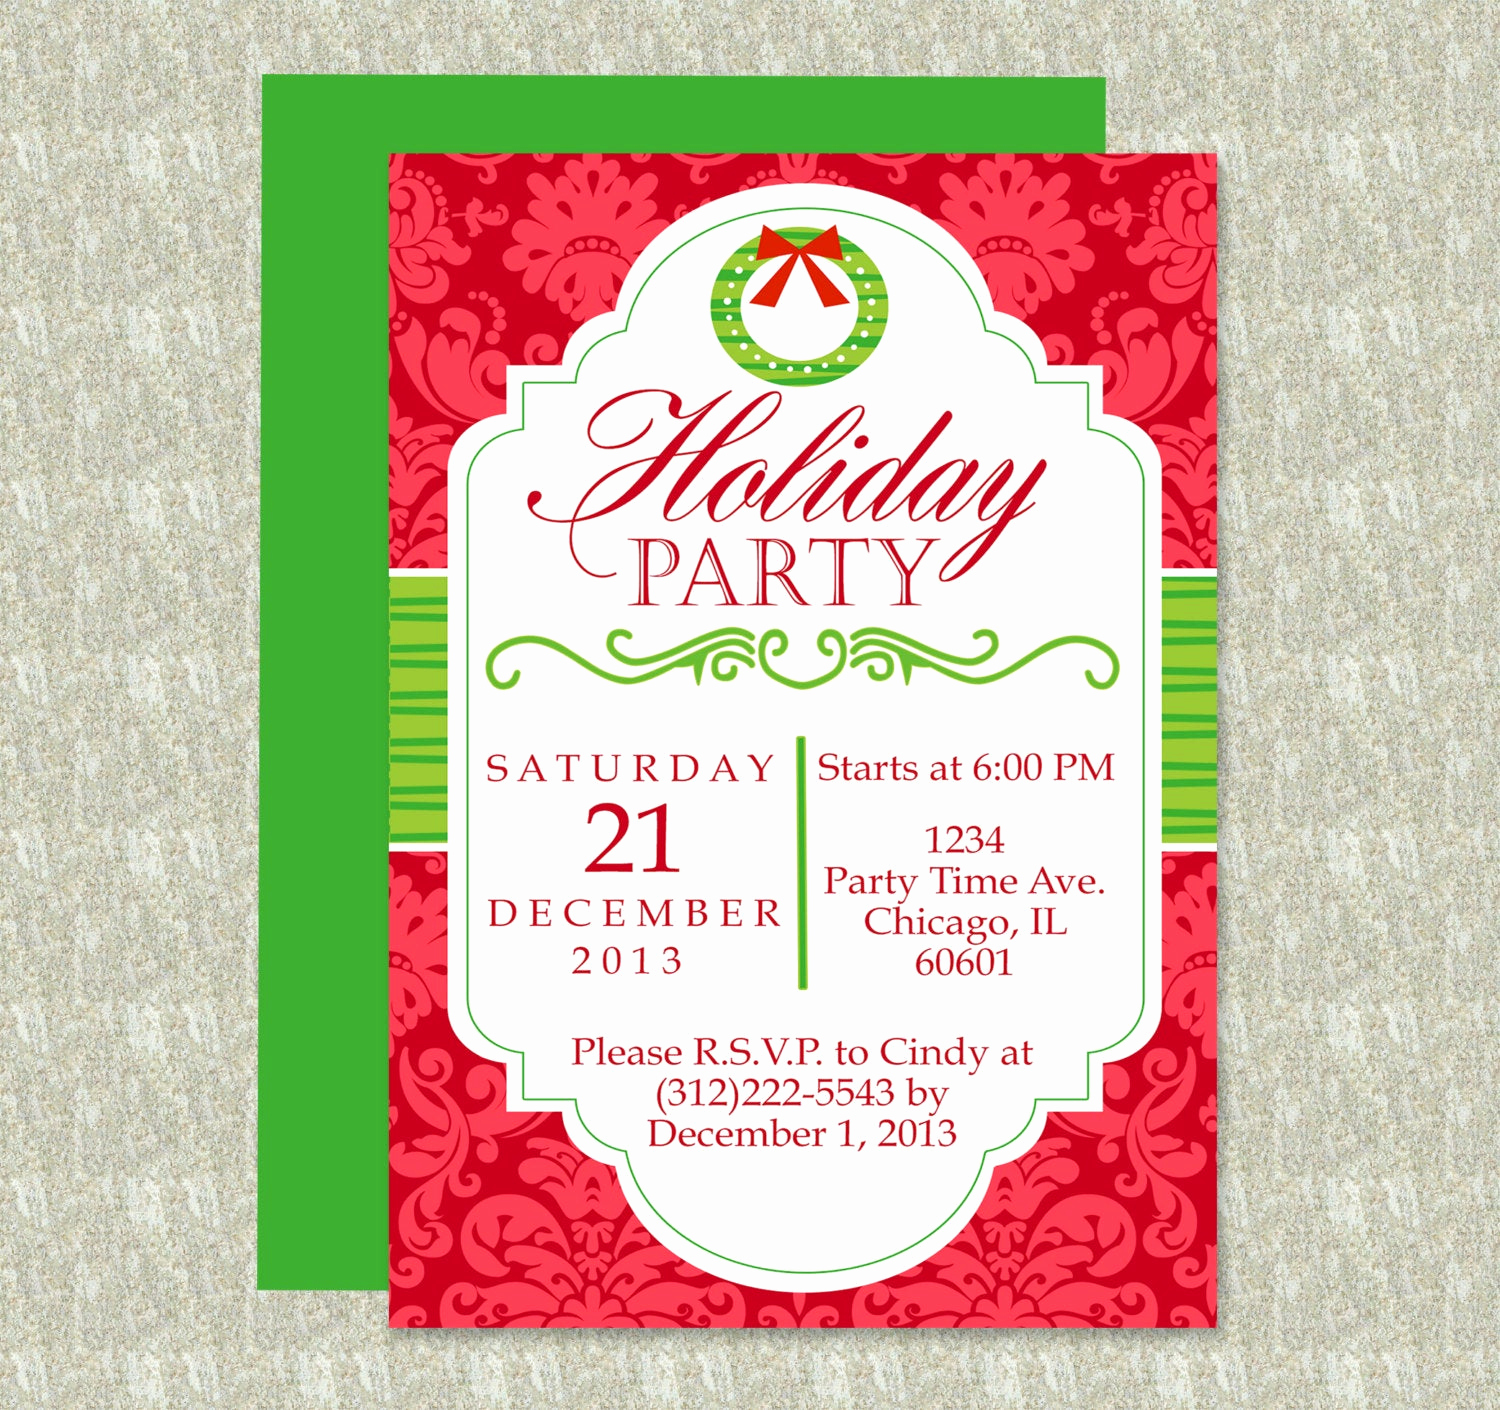 Christmas Party Invitation Template Fresh Holiday Party Invitation Editable Template Microsoft Word